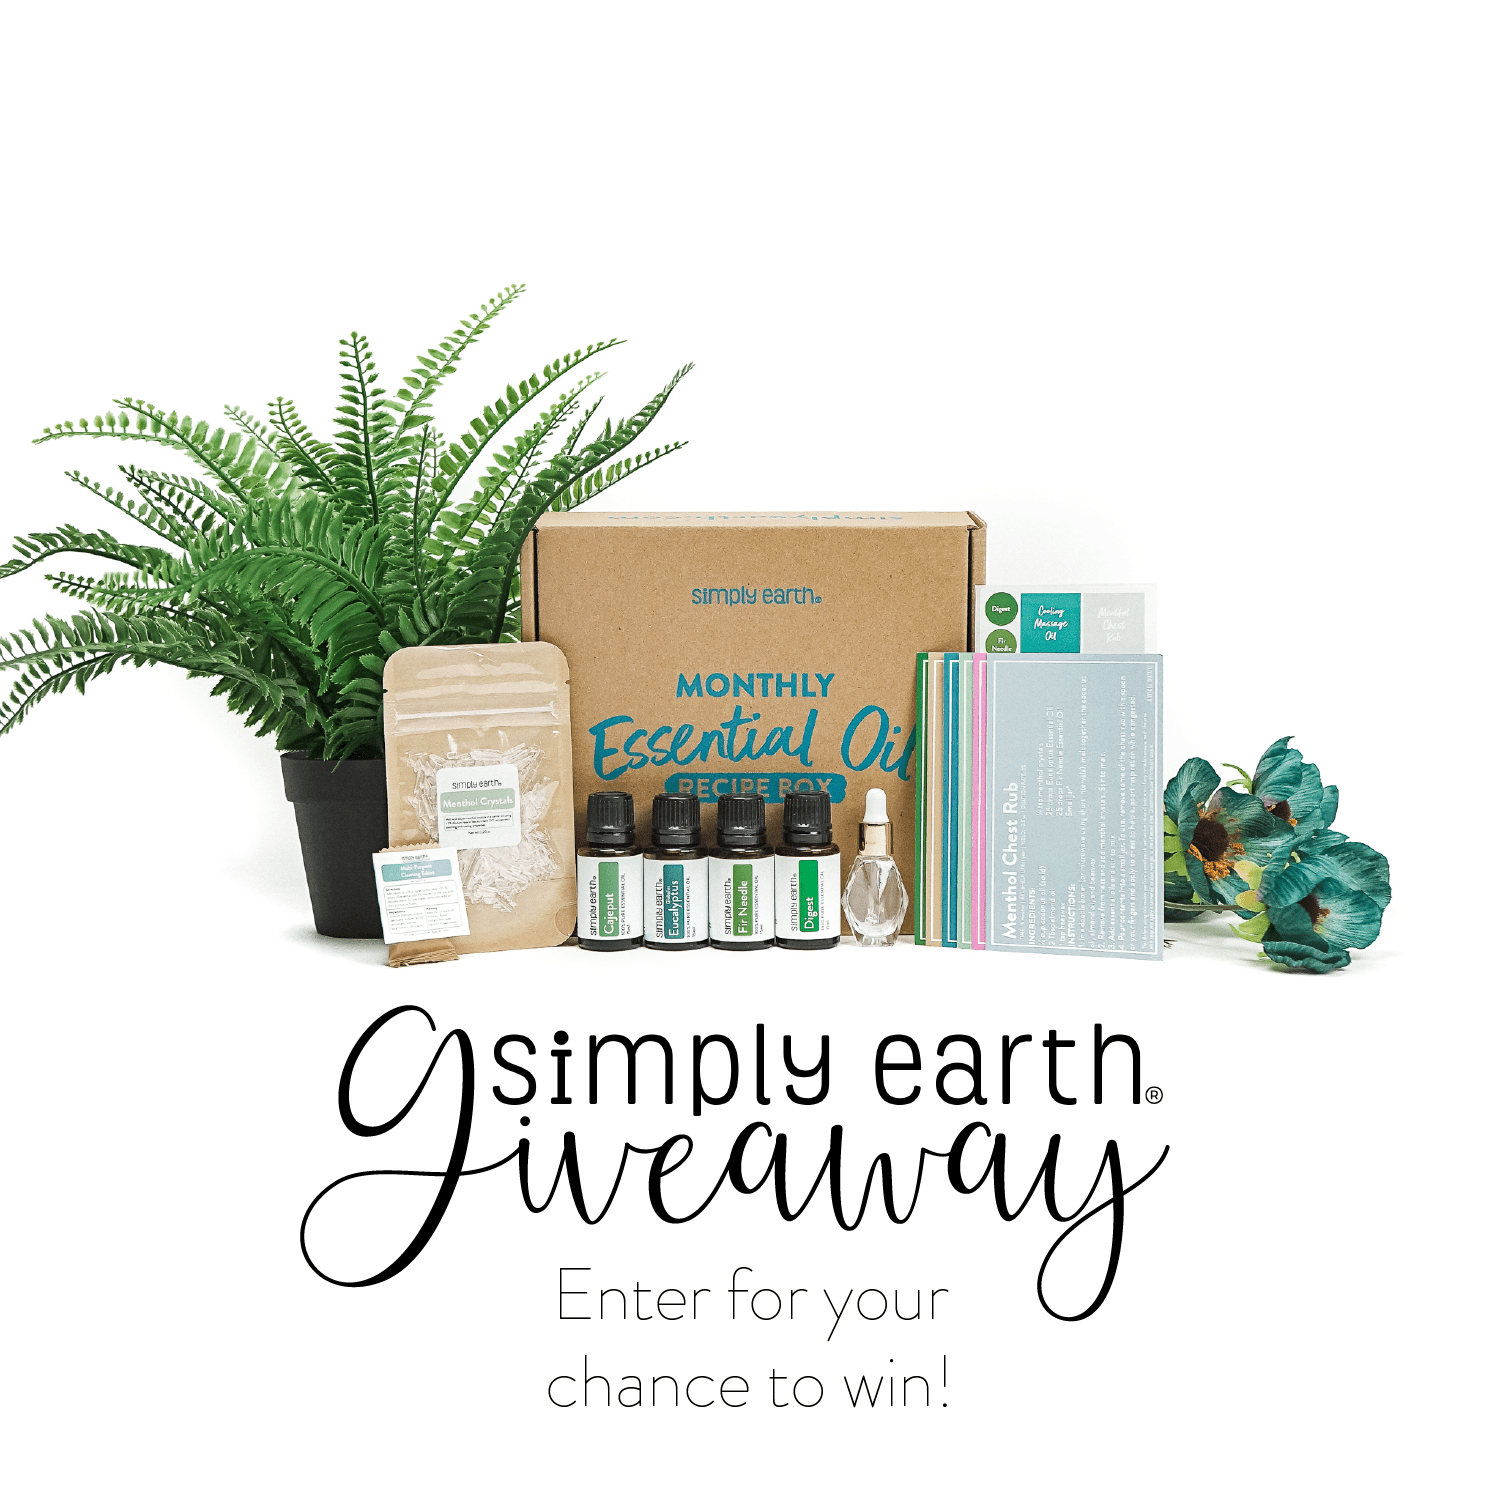 October Essential Oil Recipe Box Giveaway Giveaway Image